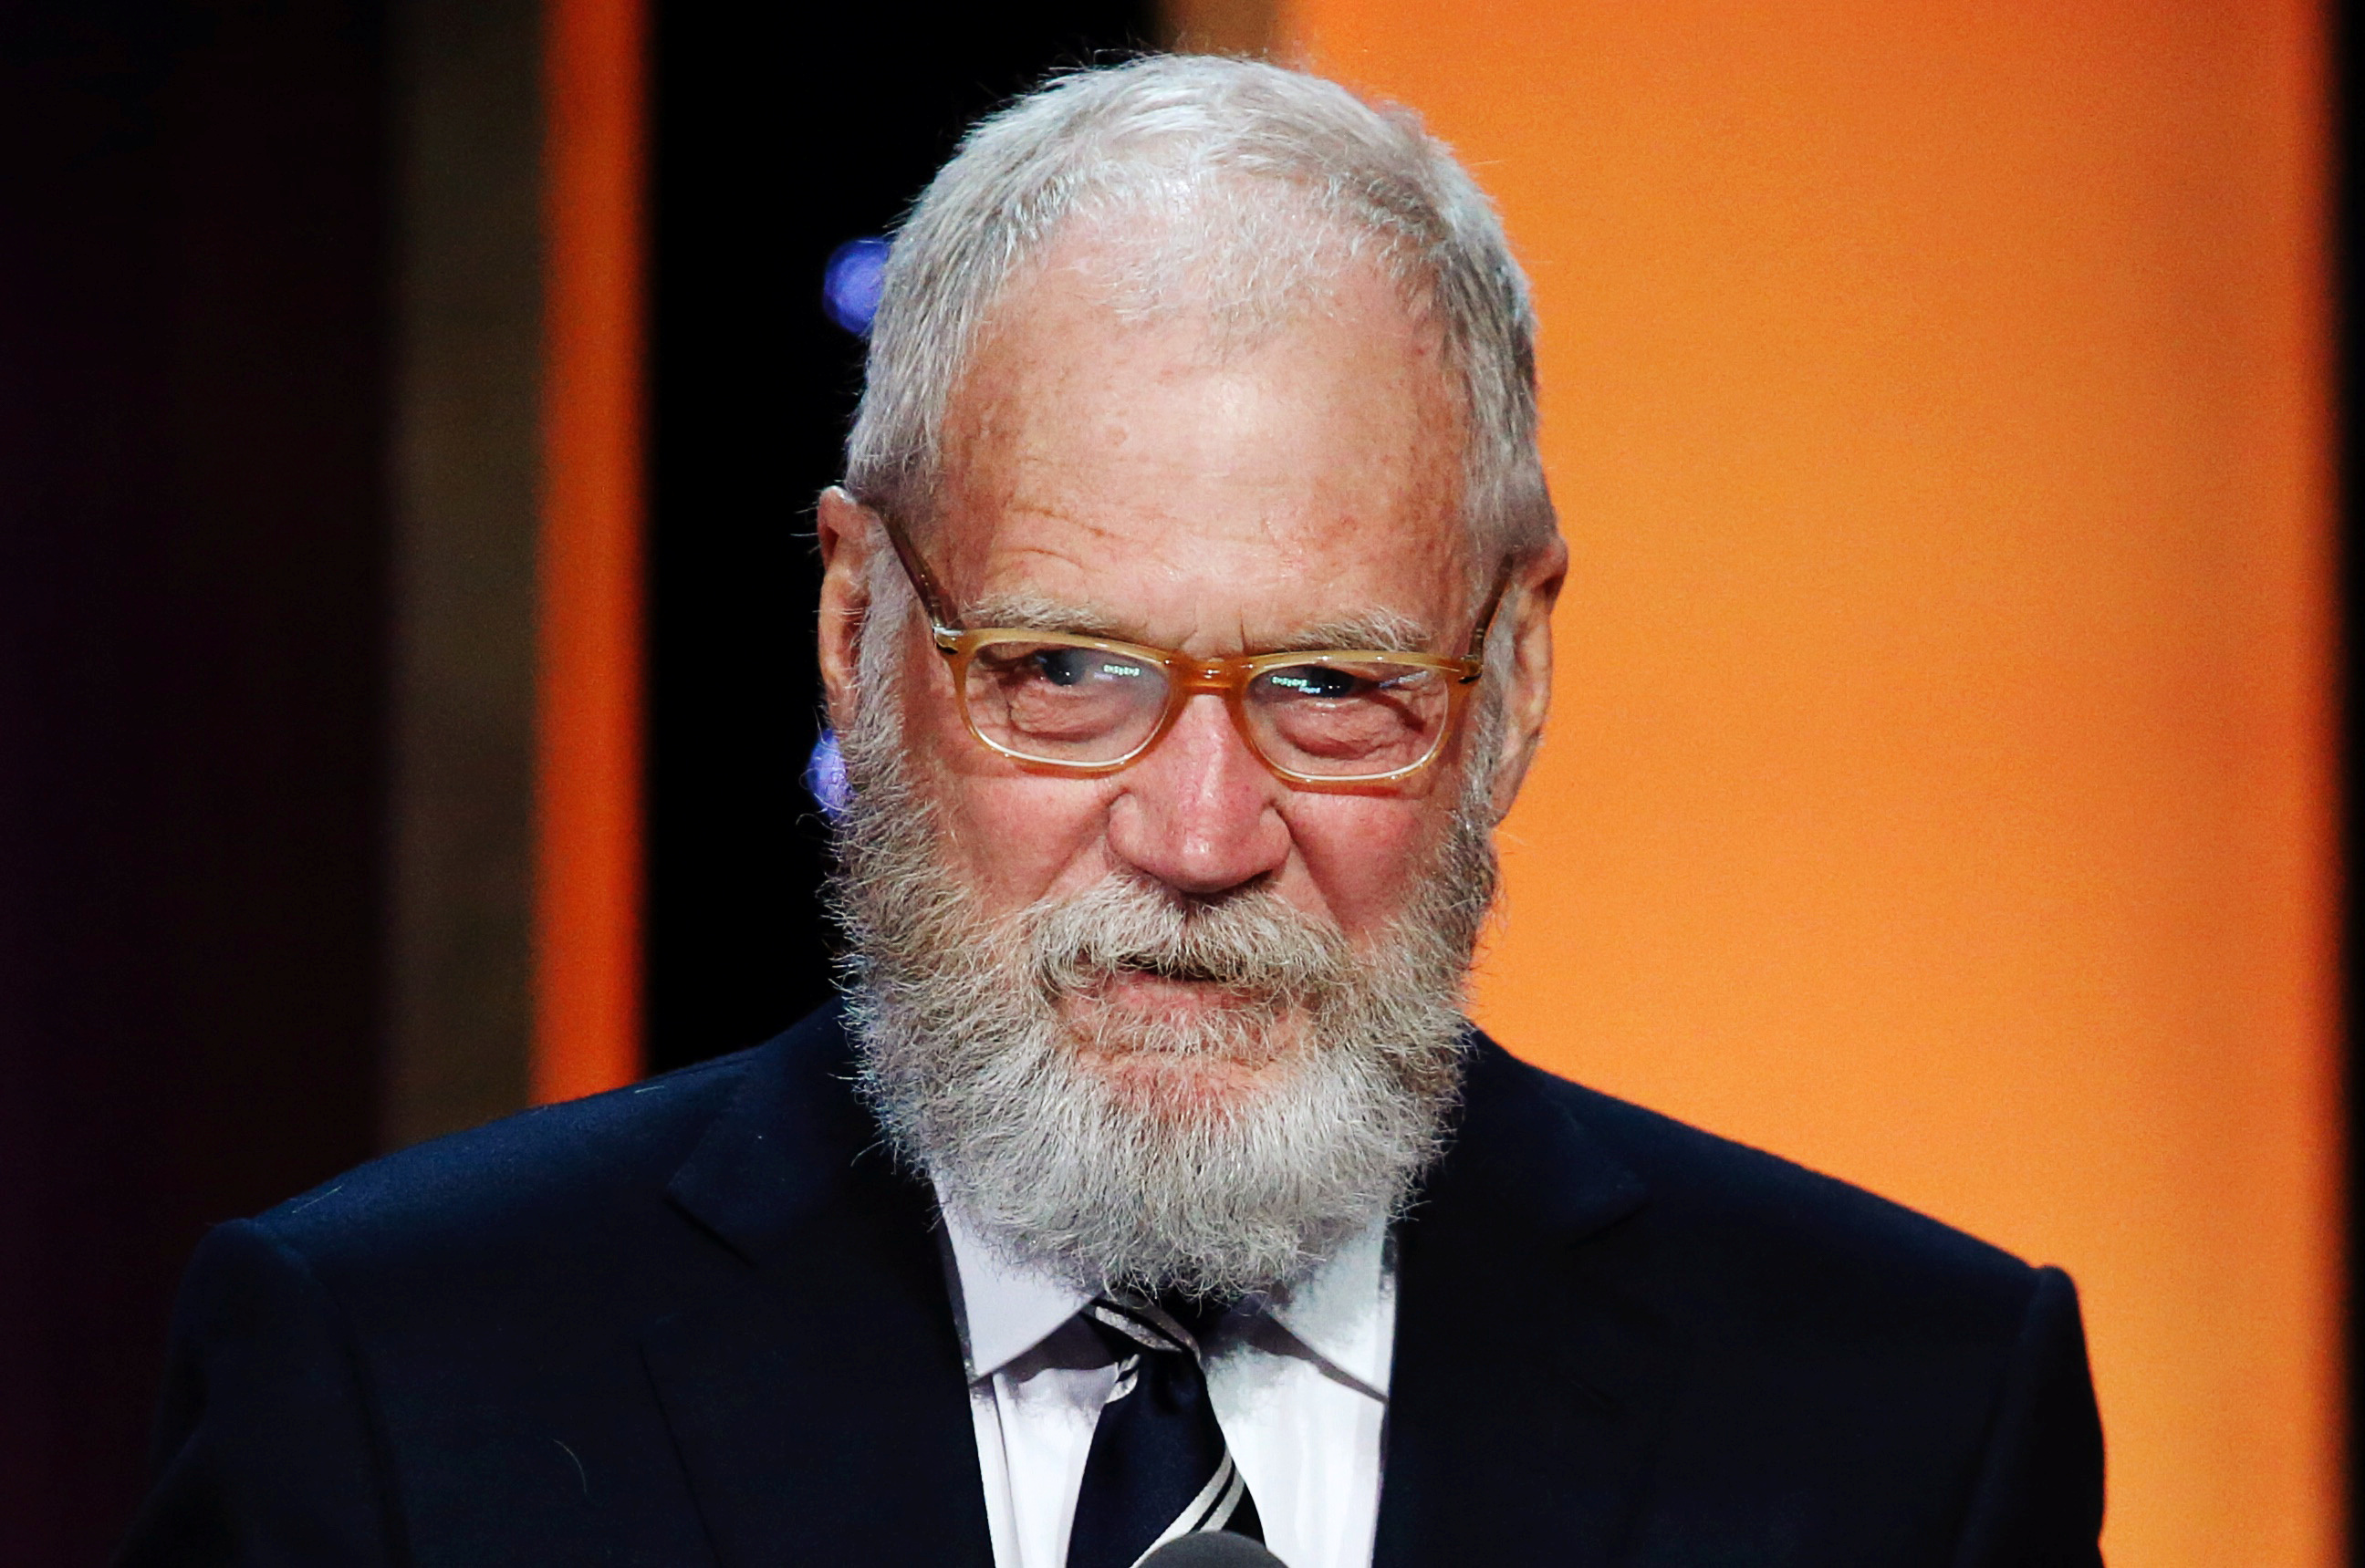 David Letterman speaks to guests after receiving his award at the 75th Annual Peabody Awards in New York, U.S. May 21, 2016. REUTERS/Eduardo Munoz  - RTSFCEG